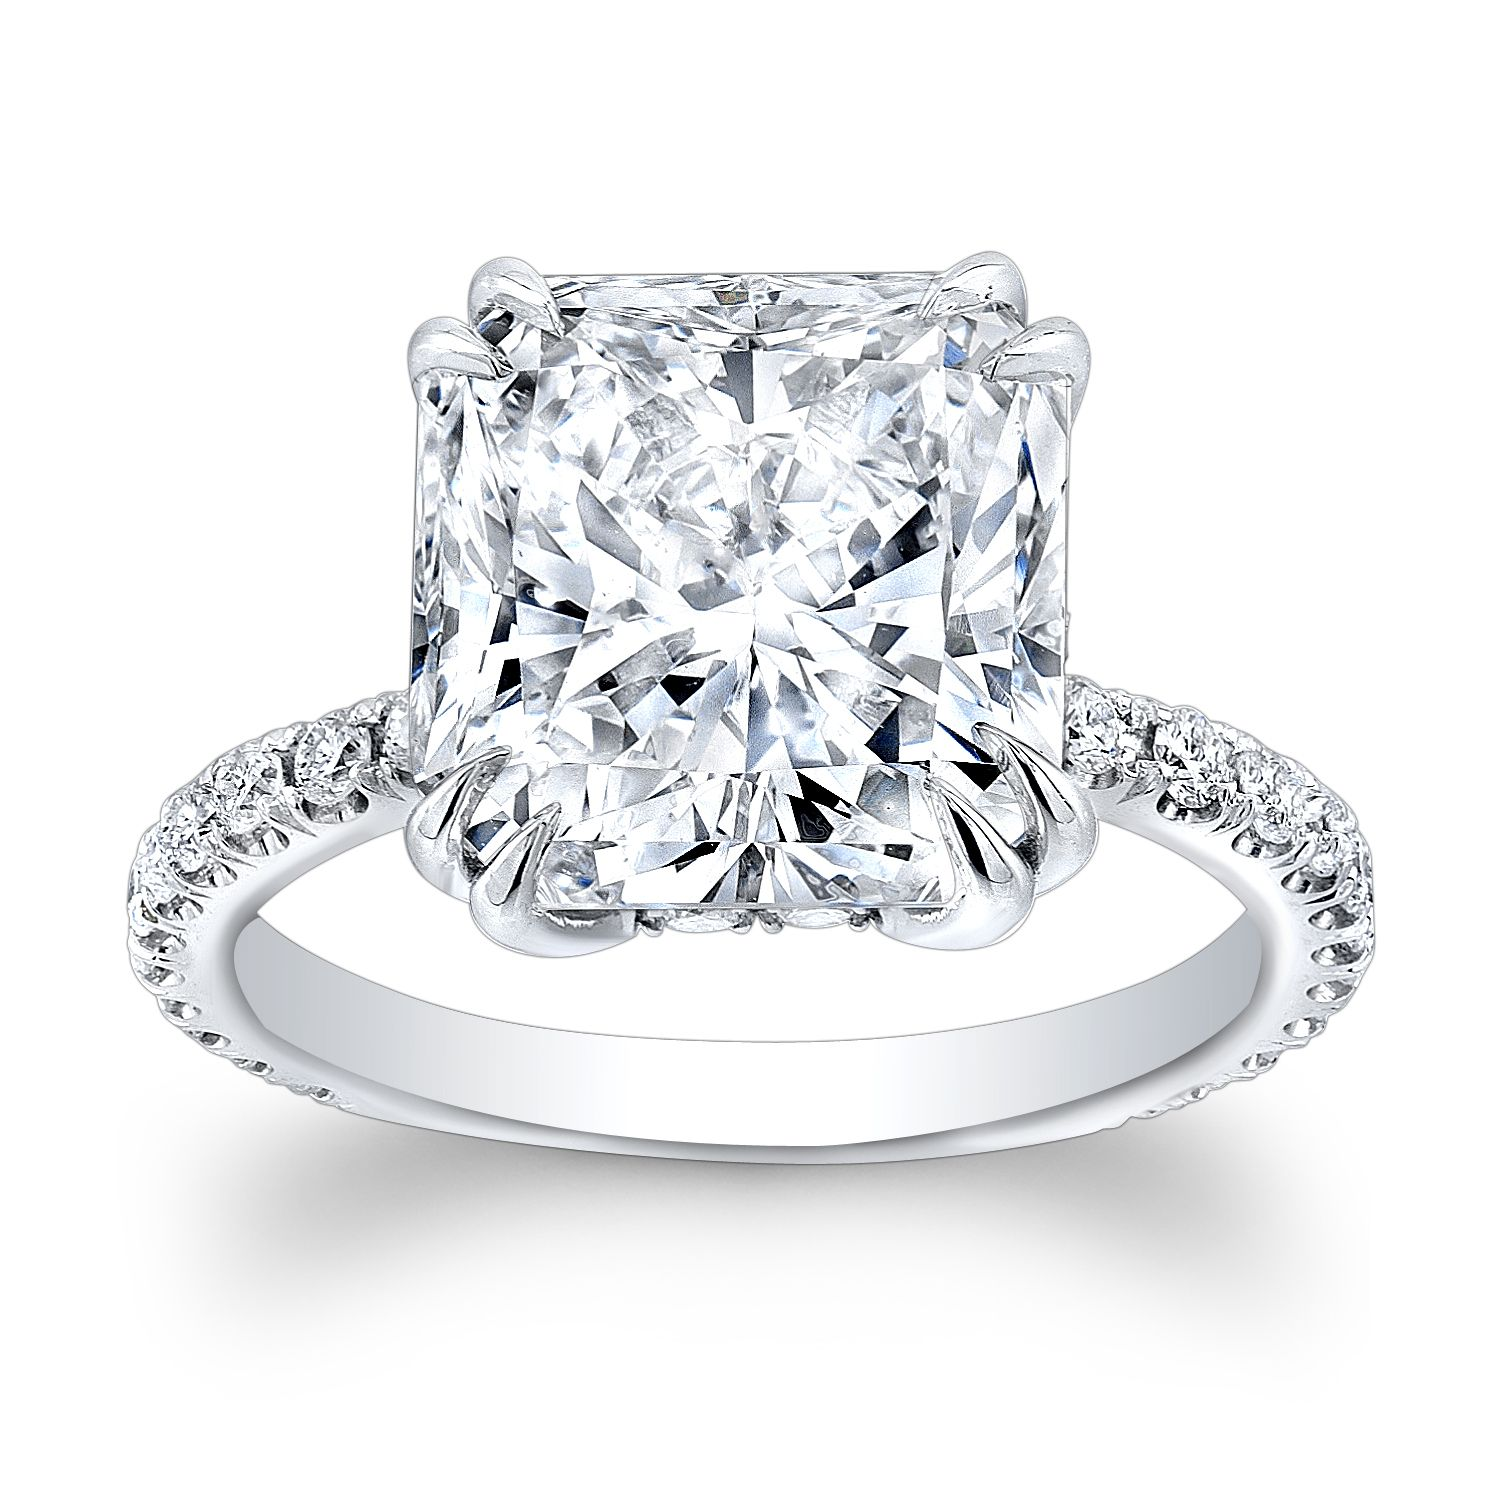 rings center platinum round engagement carat diamond gia in ct ring certified sidestones i si solitaire contemporary